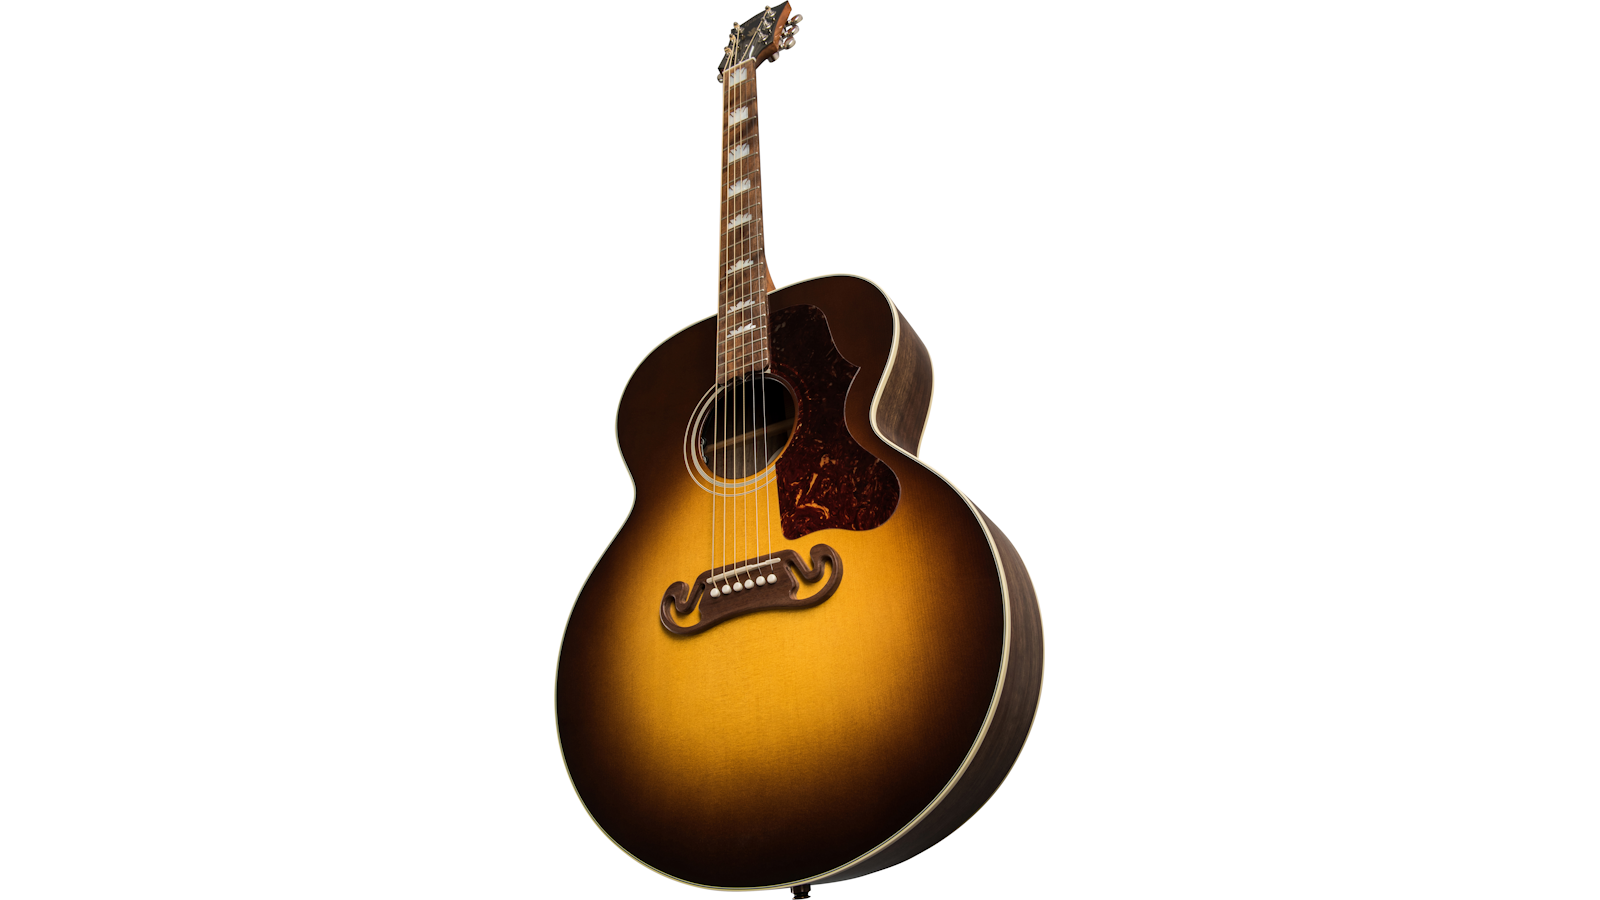 Gibson SJ-200 Review